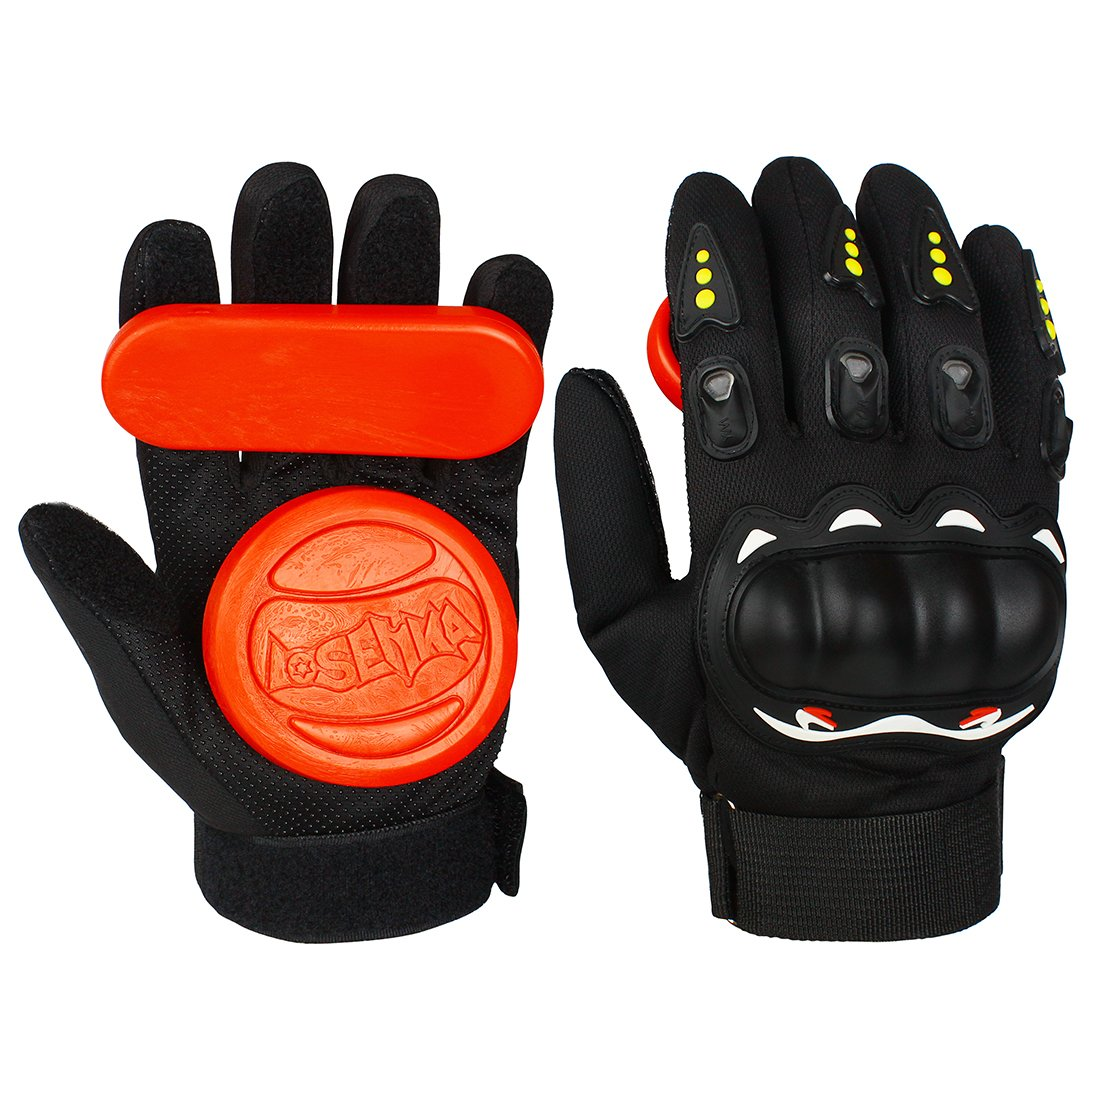 Andux Land Adult Longboard Downhill Slide Gloves Upgraded with 2 Slider Pucks HBST-05 by Andux